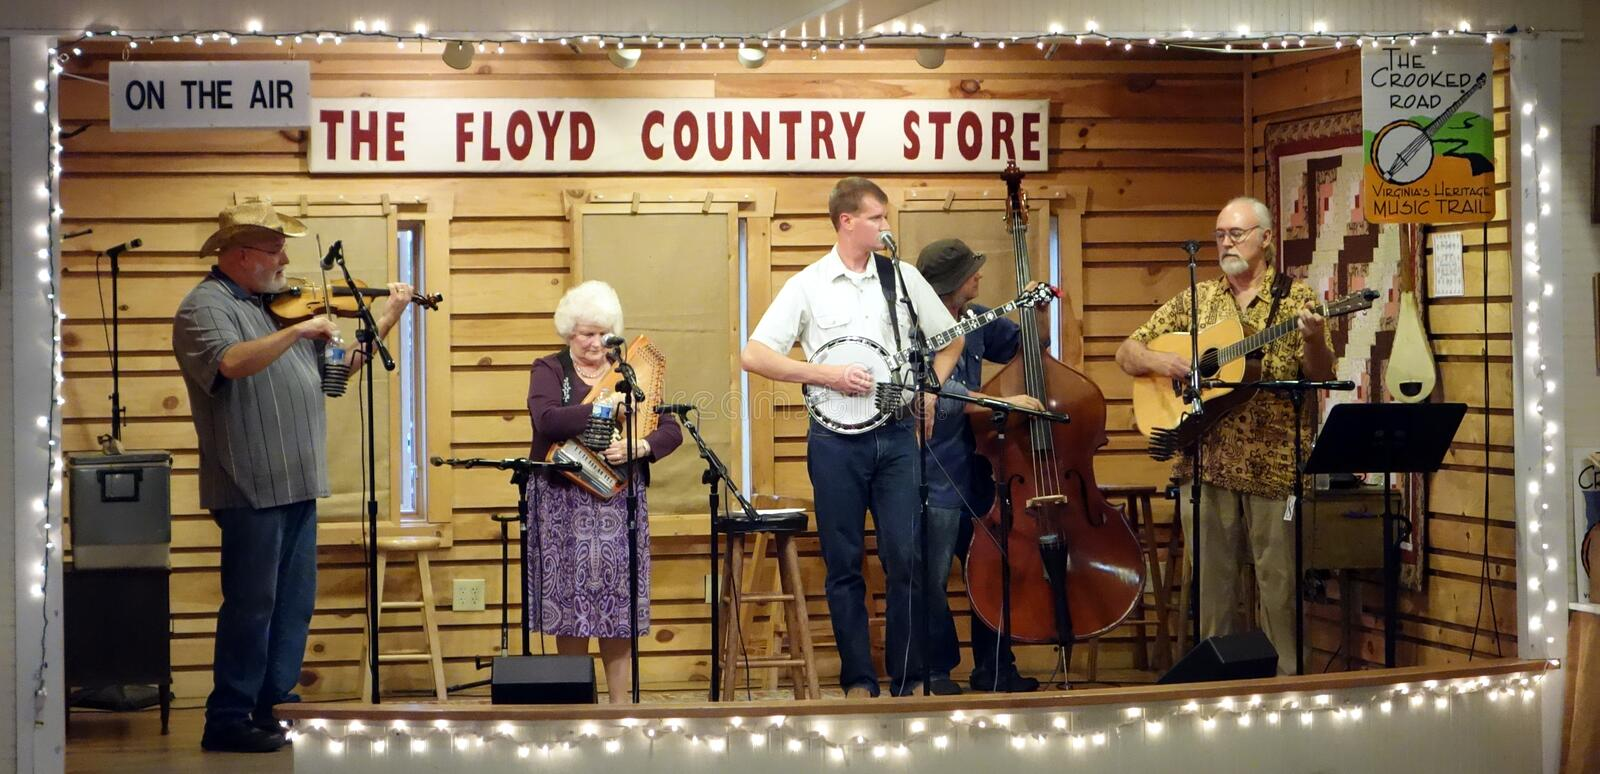 Musicians on the stage at the floyd country store stock photos